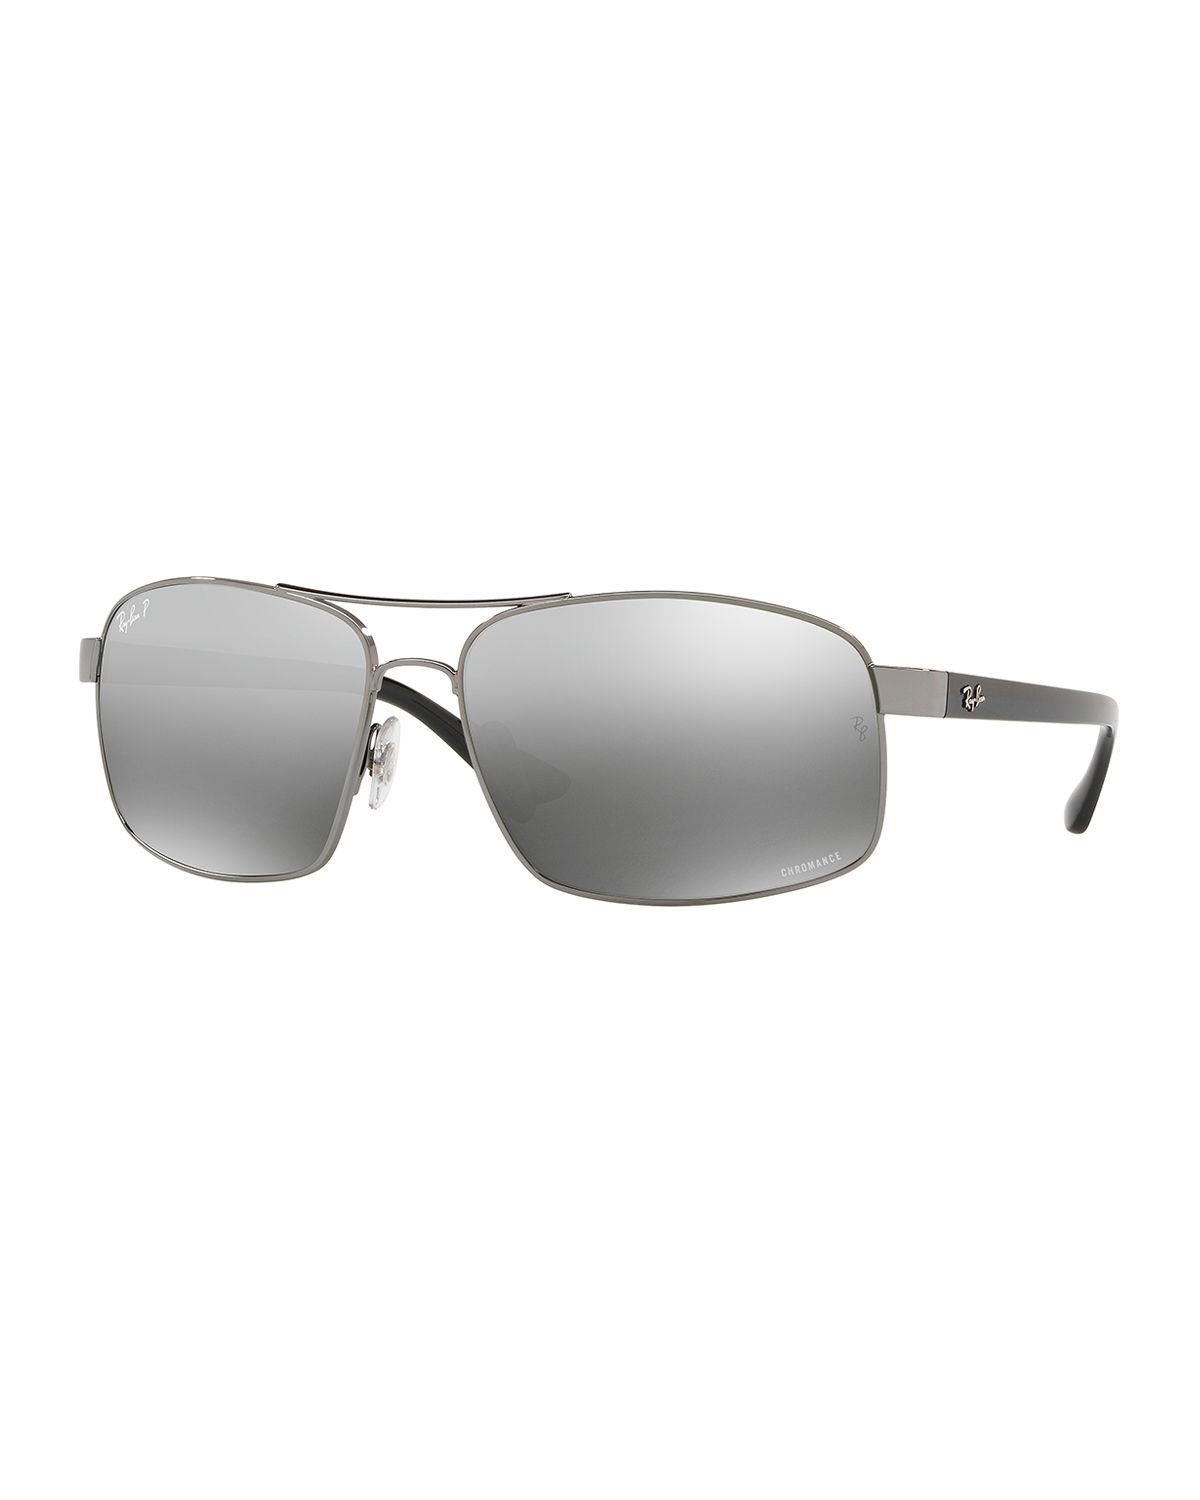 3e57c2fb5d Lyst - Ray-Ban Men s Square Chromance Metal Sunglasses in Gray for Men